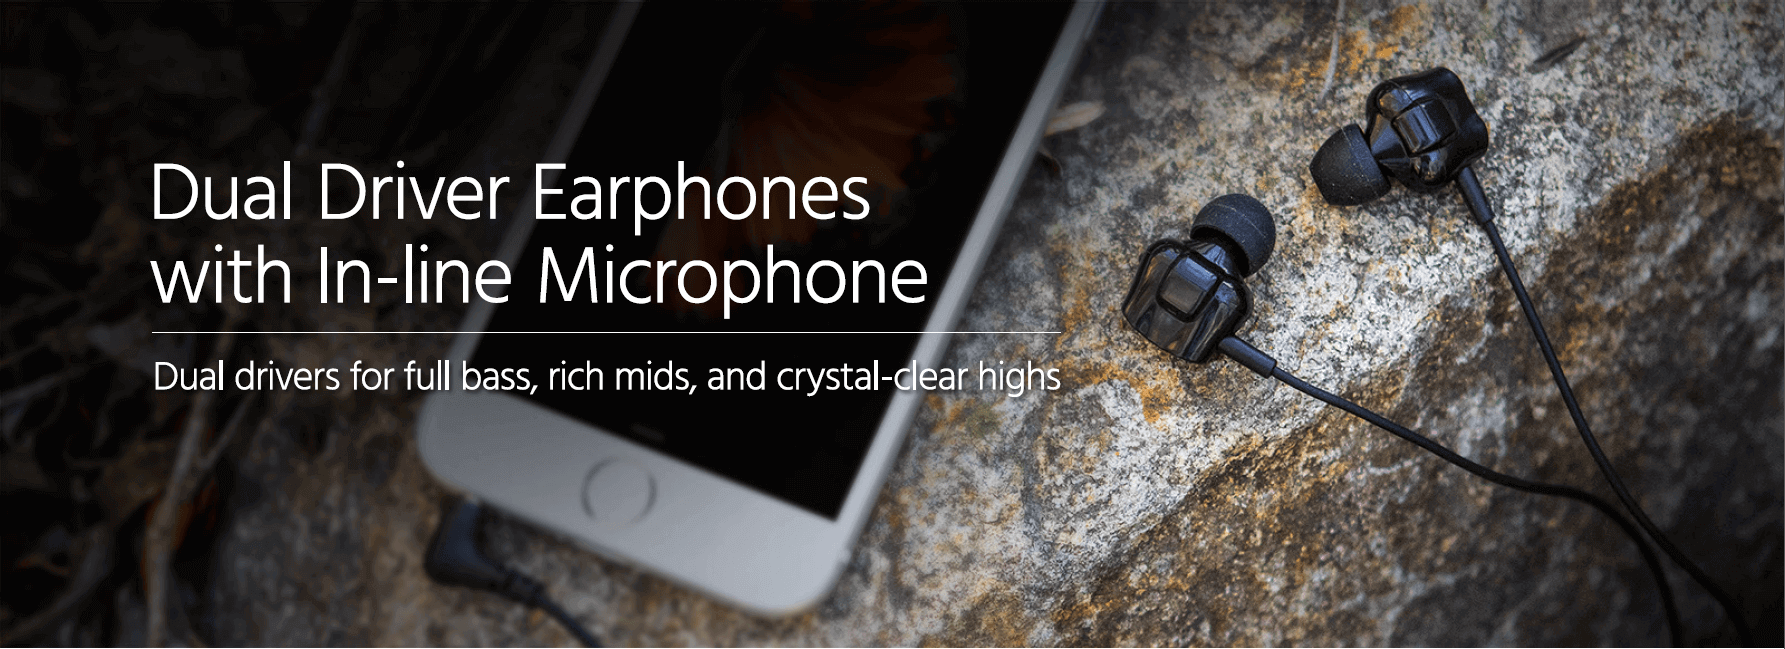 Monoprice Dual Driver Earbuds Headphones With In Line Mic Controller Sending Signals Over A Coaxial Cable Electrical Engineering Earphones